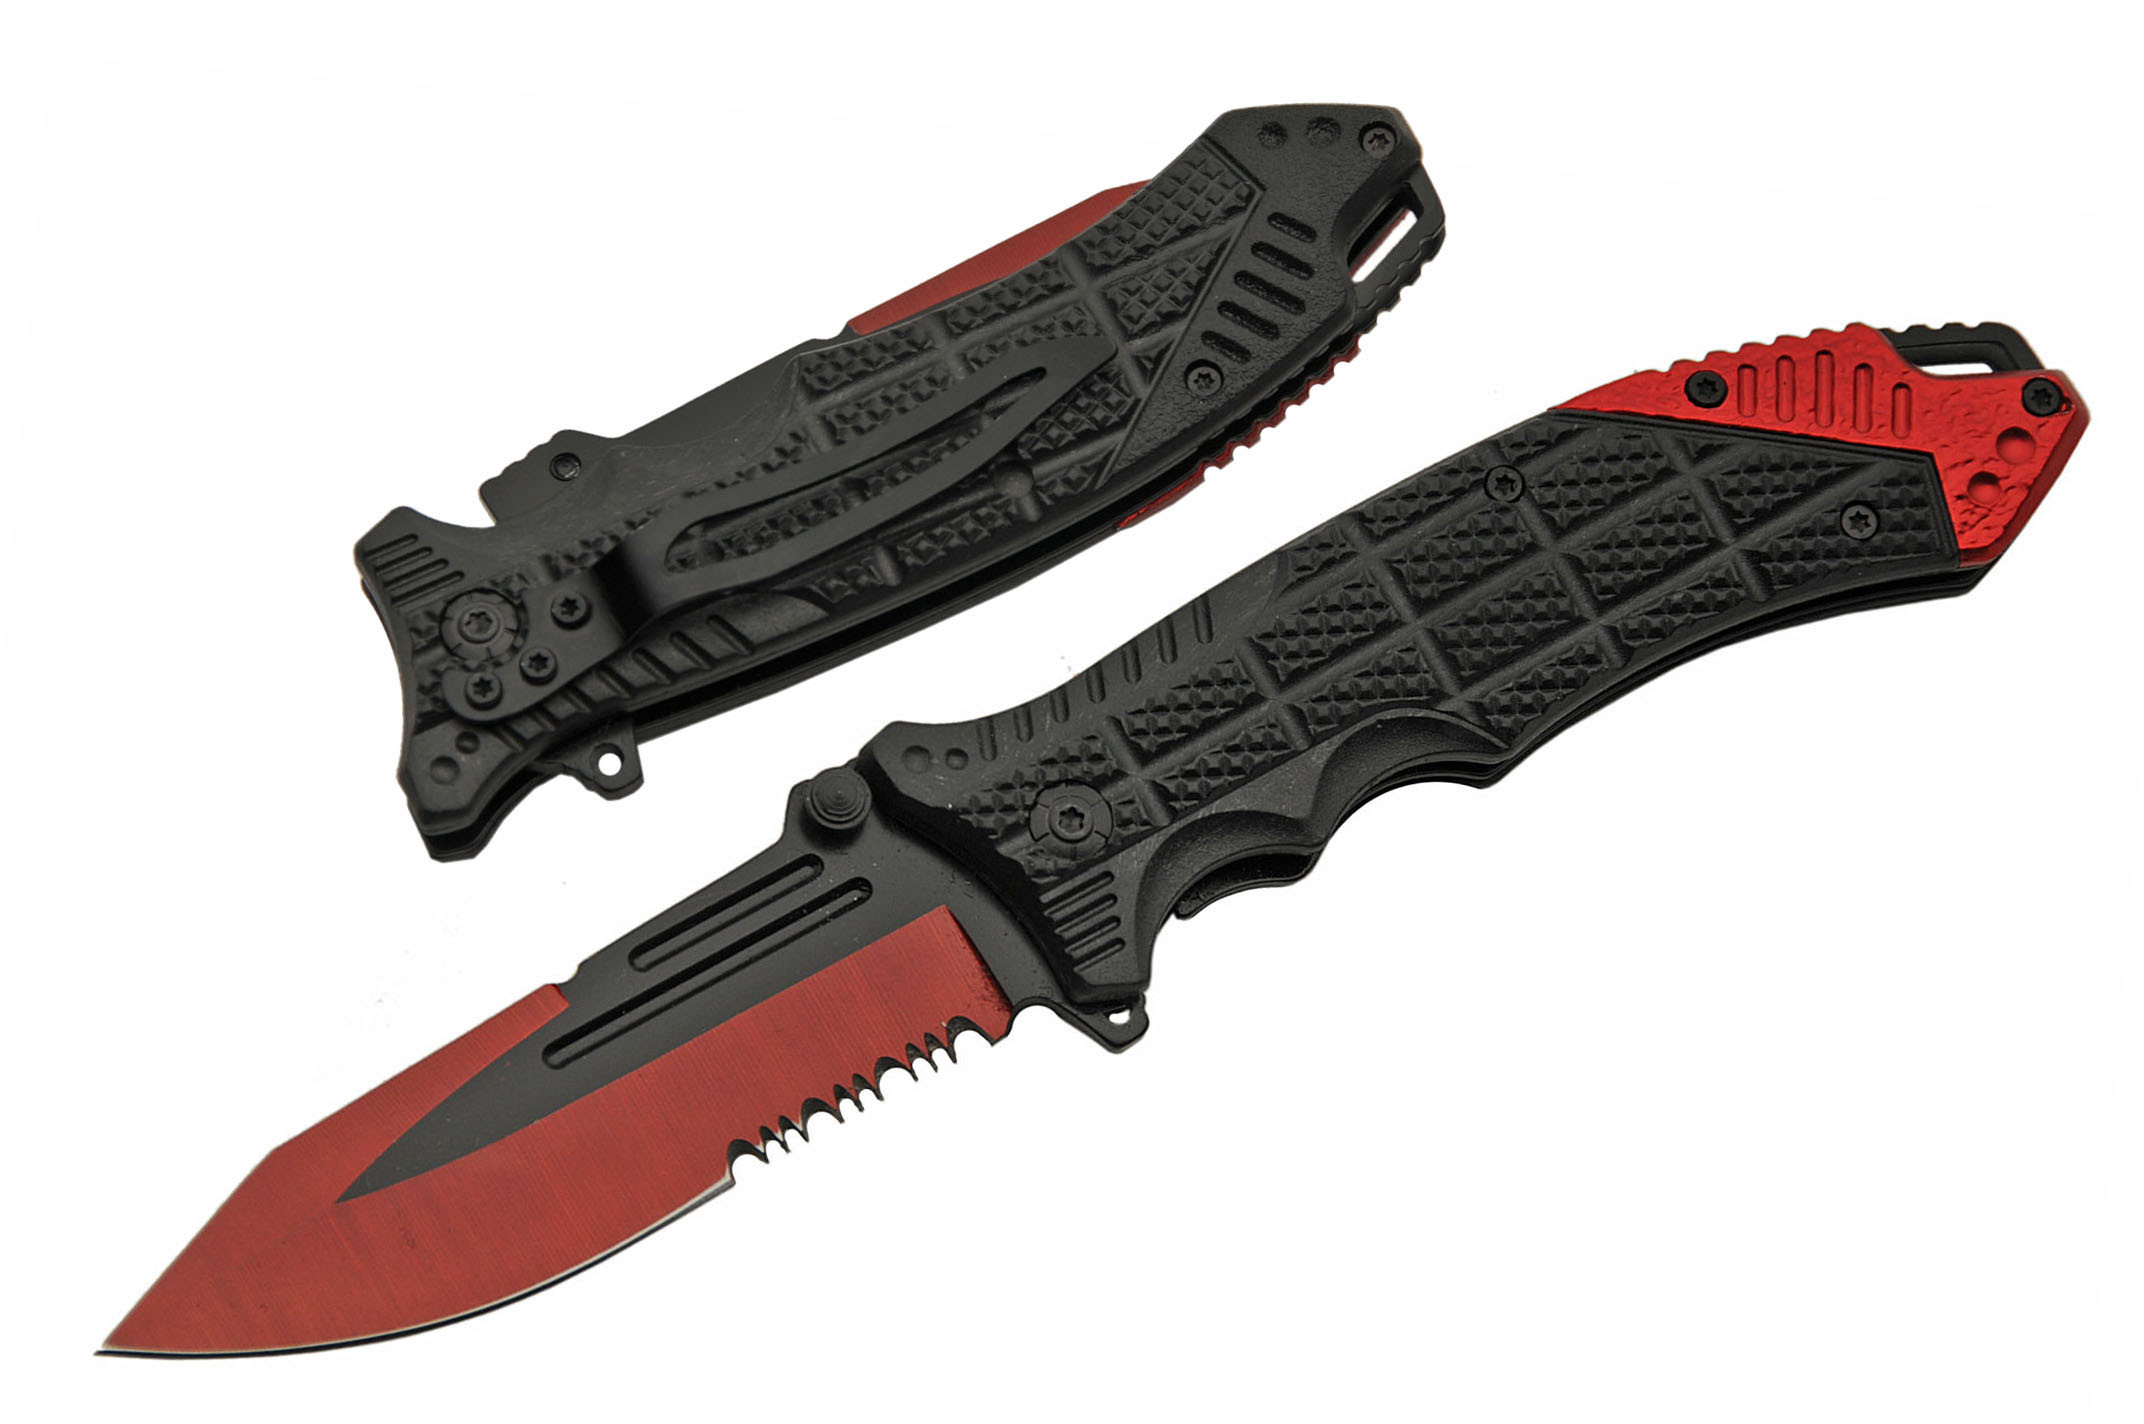 Spring-Assist Folding Knife | Black Red Rite Edge Serrated Blade Edc Low Cost